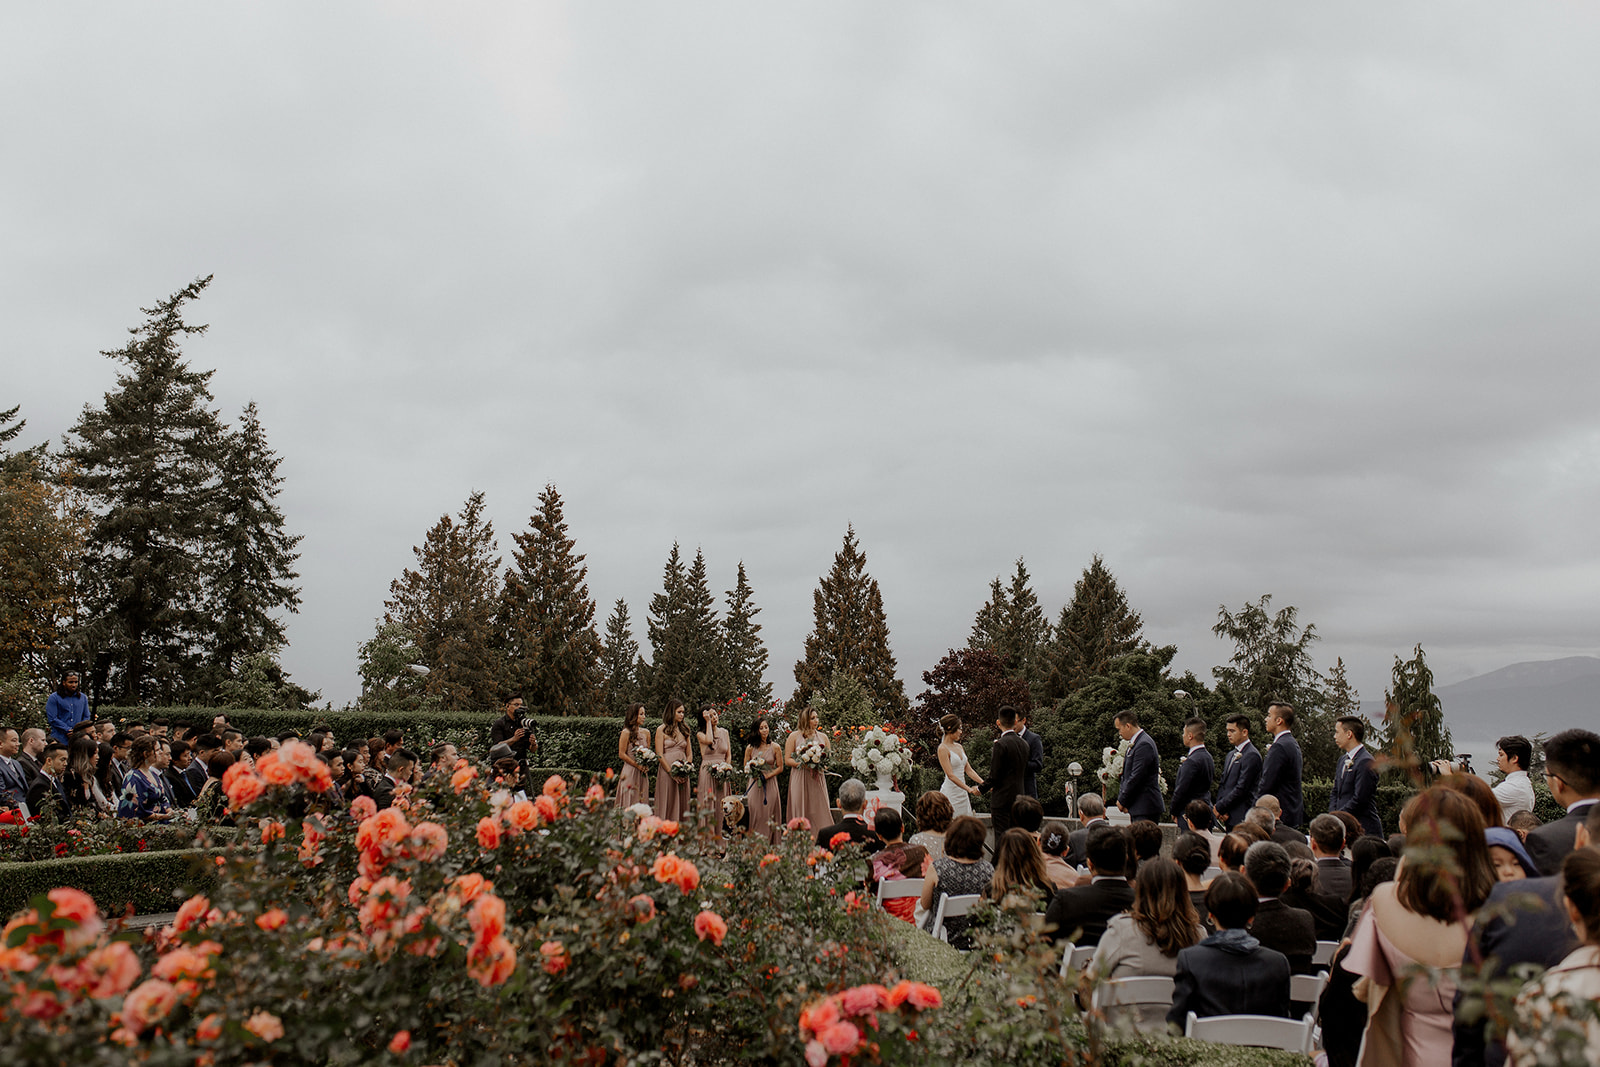 UBC Rose Garden blooms with wedding ceremony in background